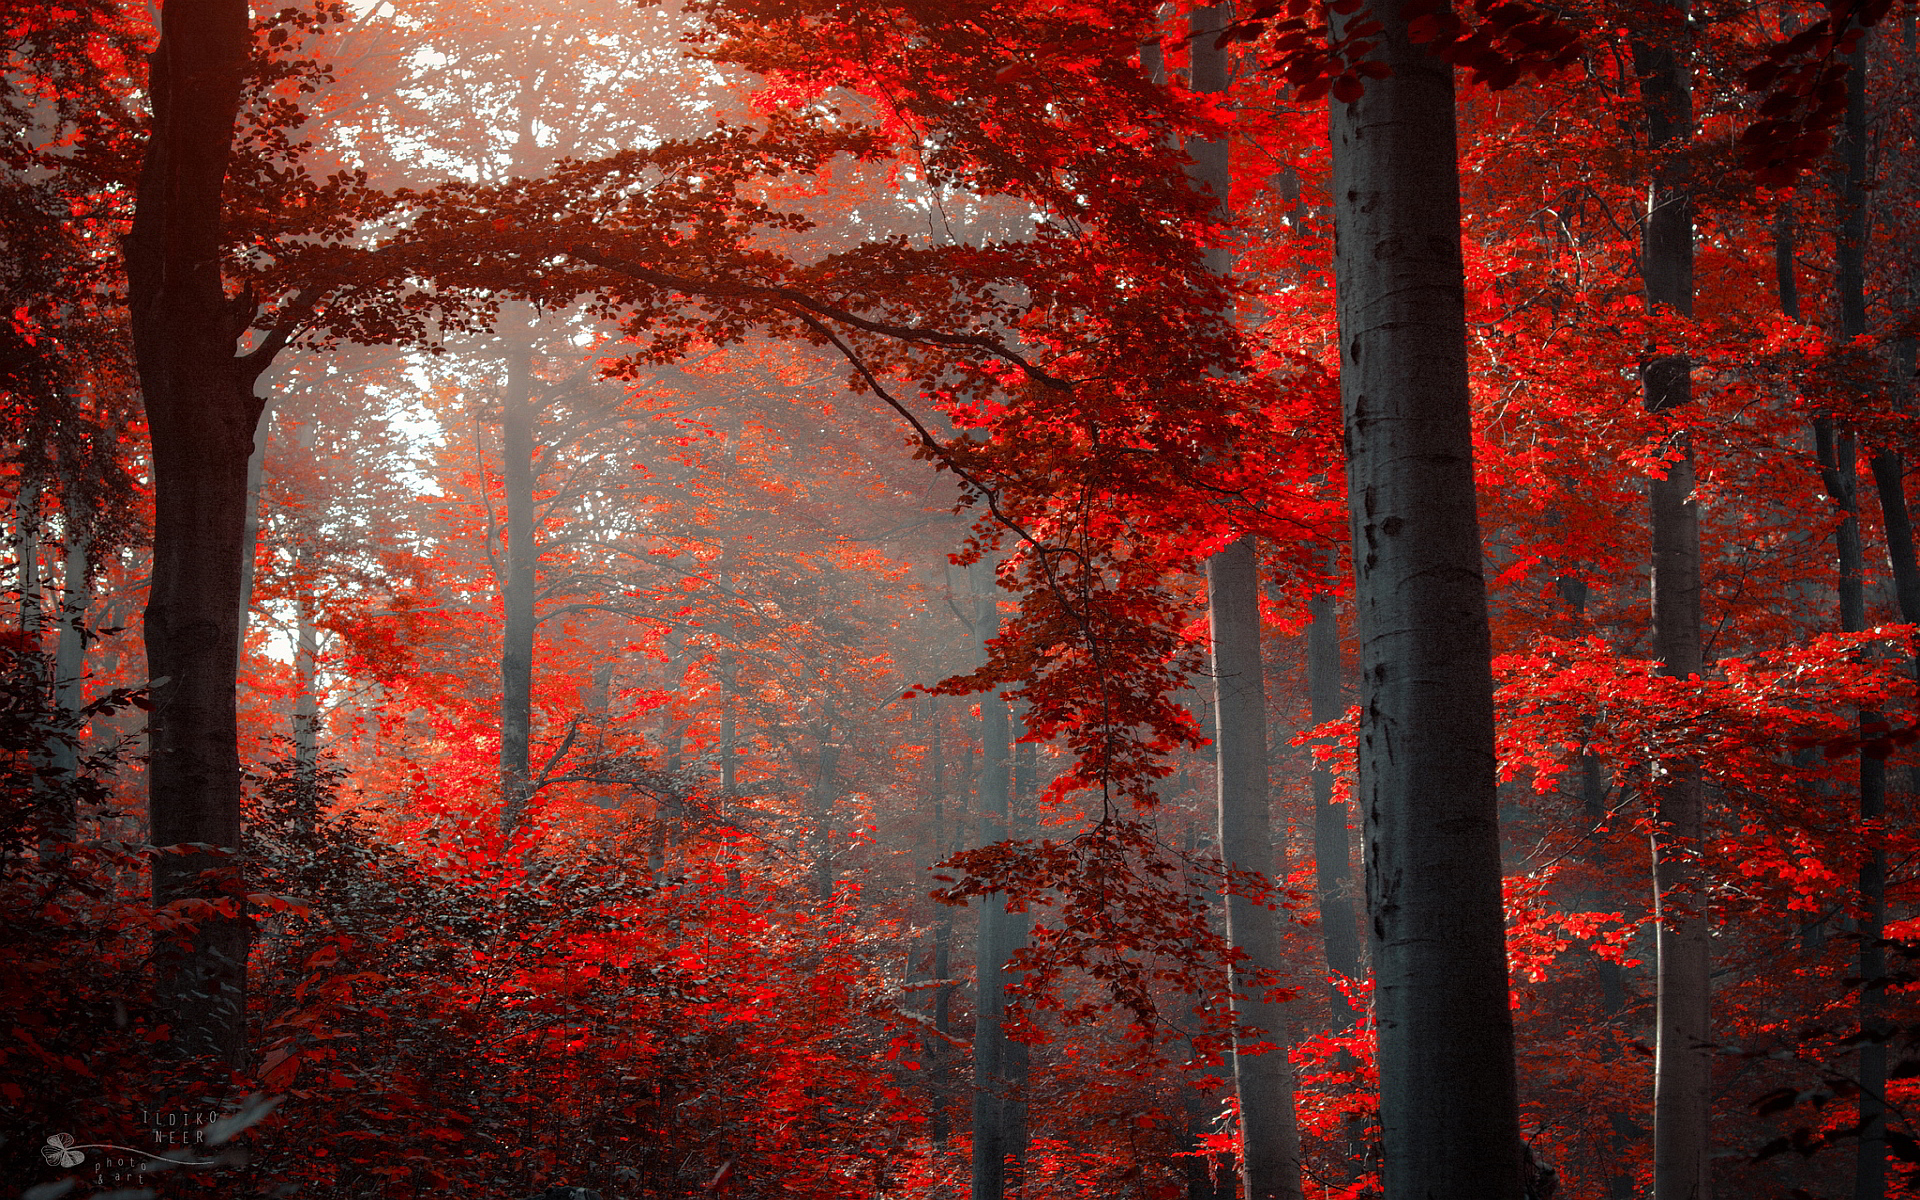 Great Wallpaper Harry Potter Autumn - ad9a8824-cb21-4580-b04a-d276a0781072  Pictures_547122.jpg